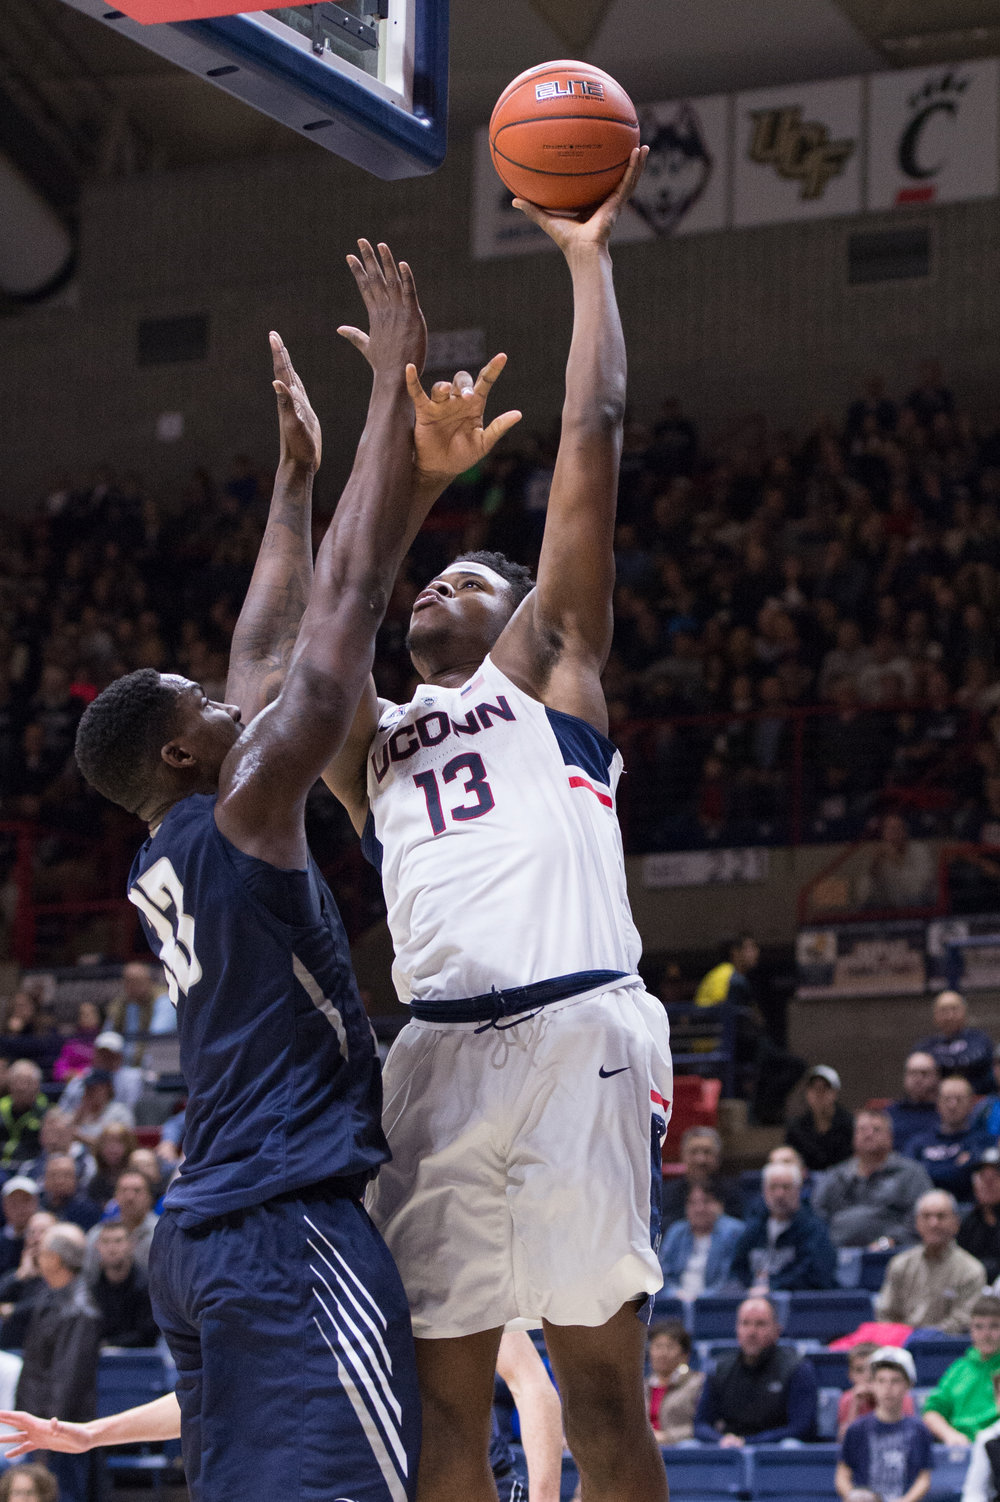 UConn Men's Basketball vs. Ospreys #3387 December 18, 2016.jpg